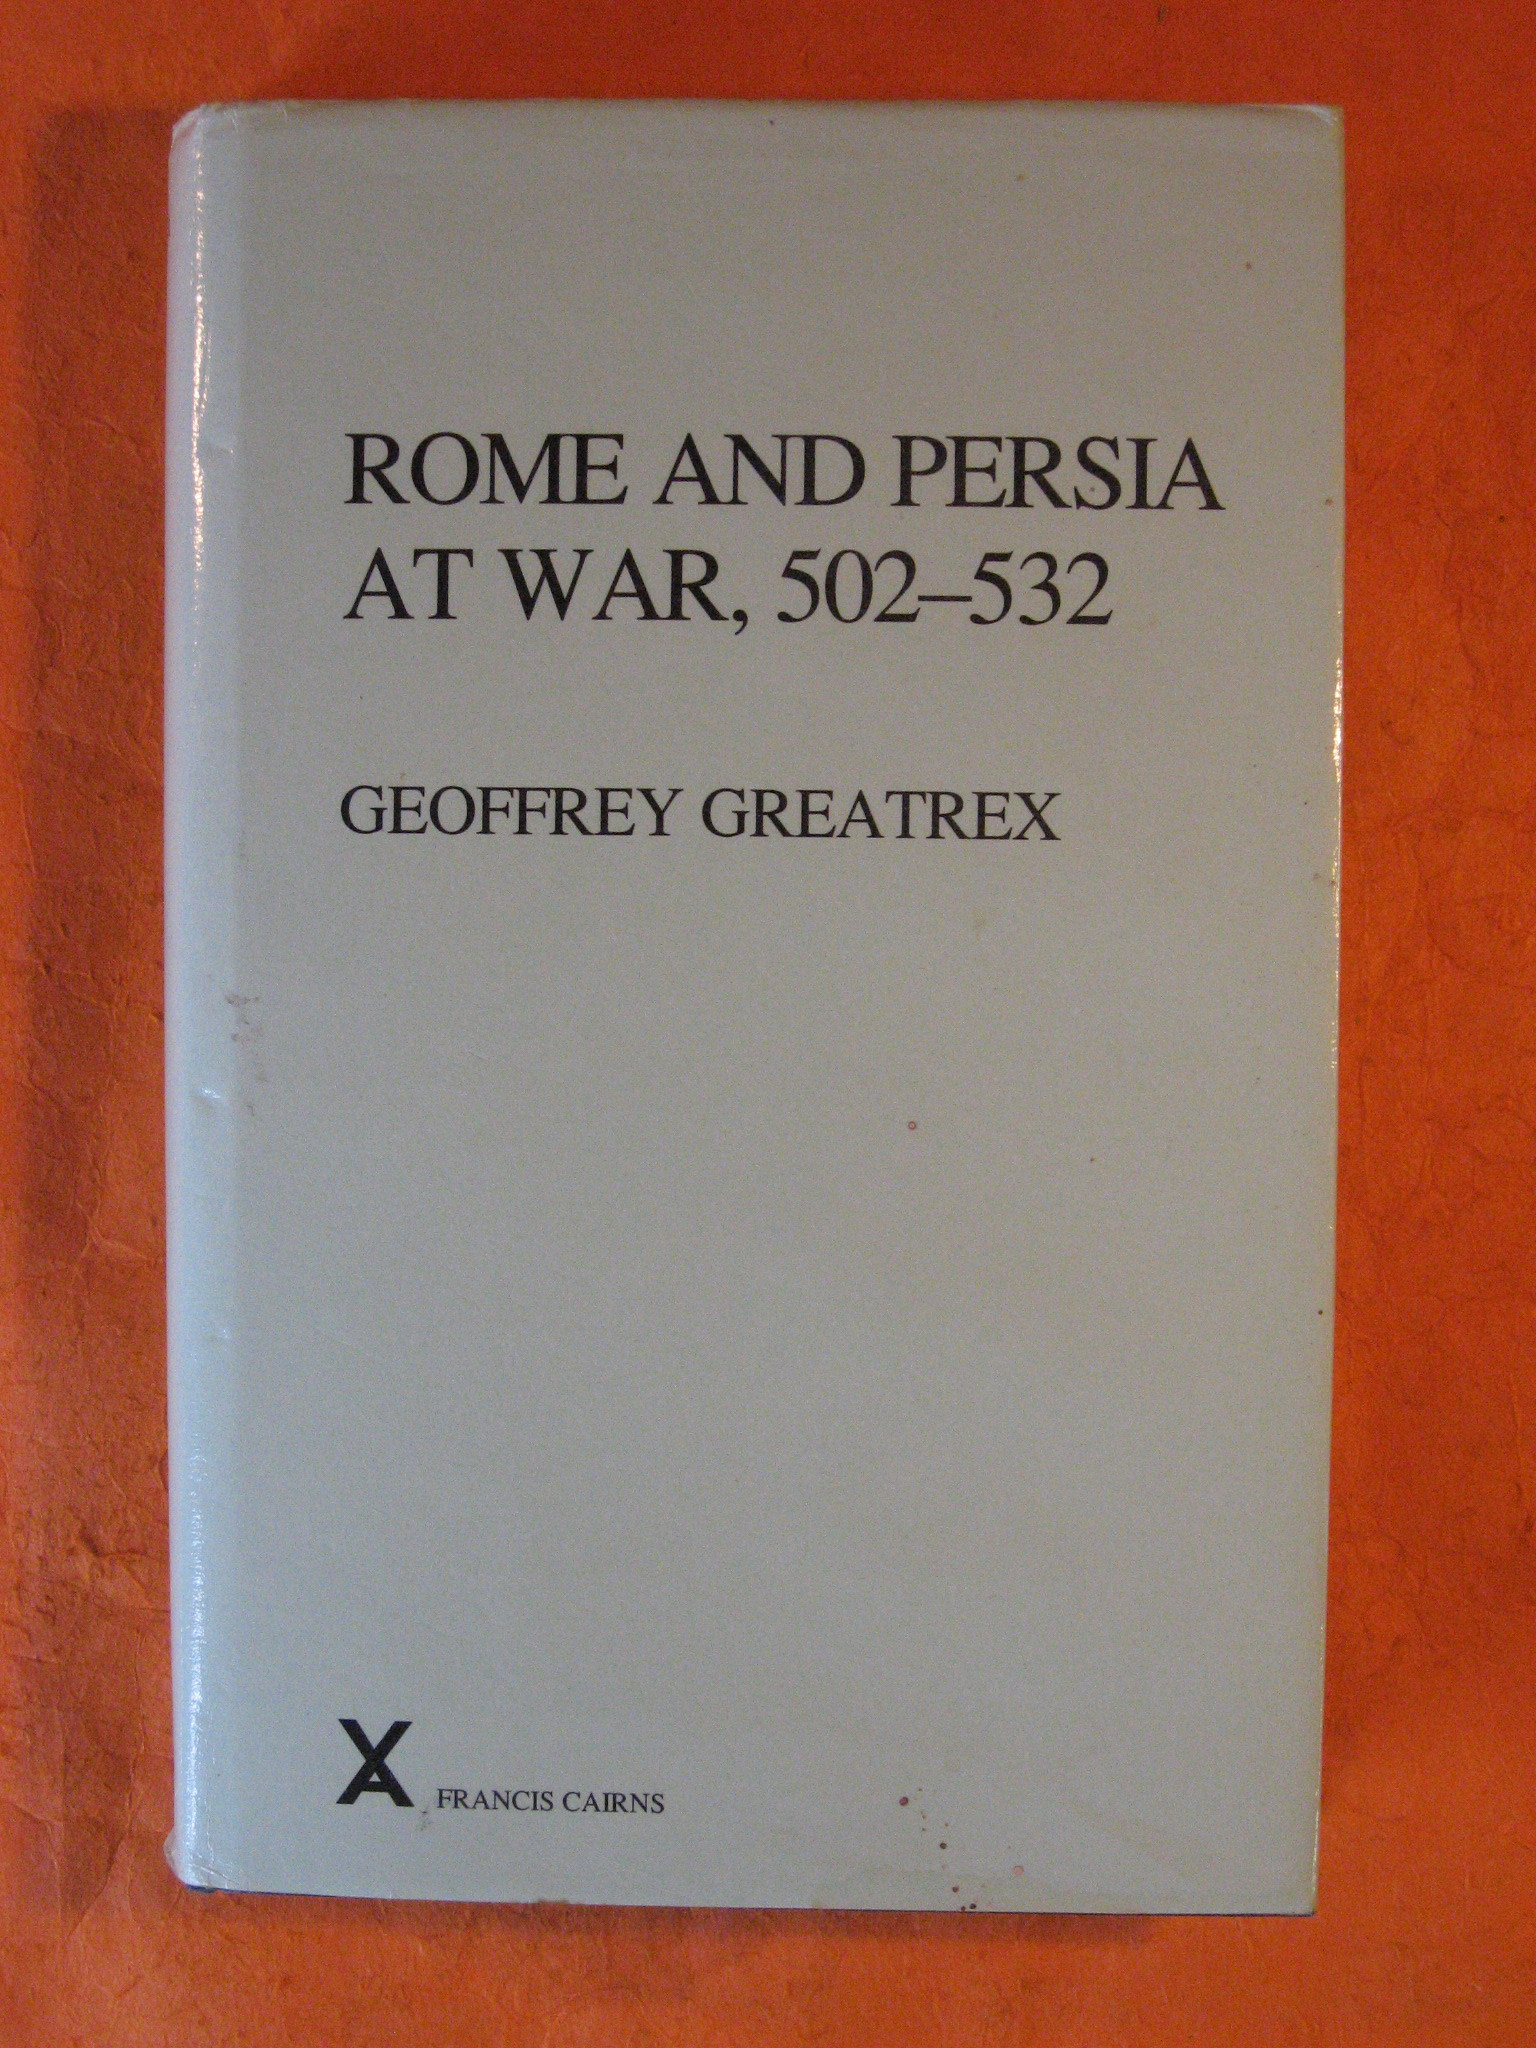 Rome and Persia at War, 502-532  Arca Classical and Medieval Texts, Papers and Monographs, Geoffrey Greatrex